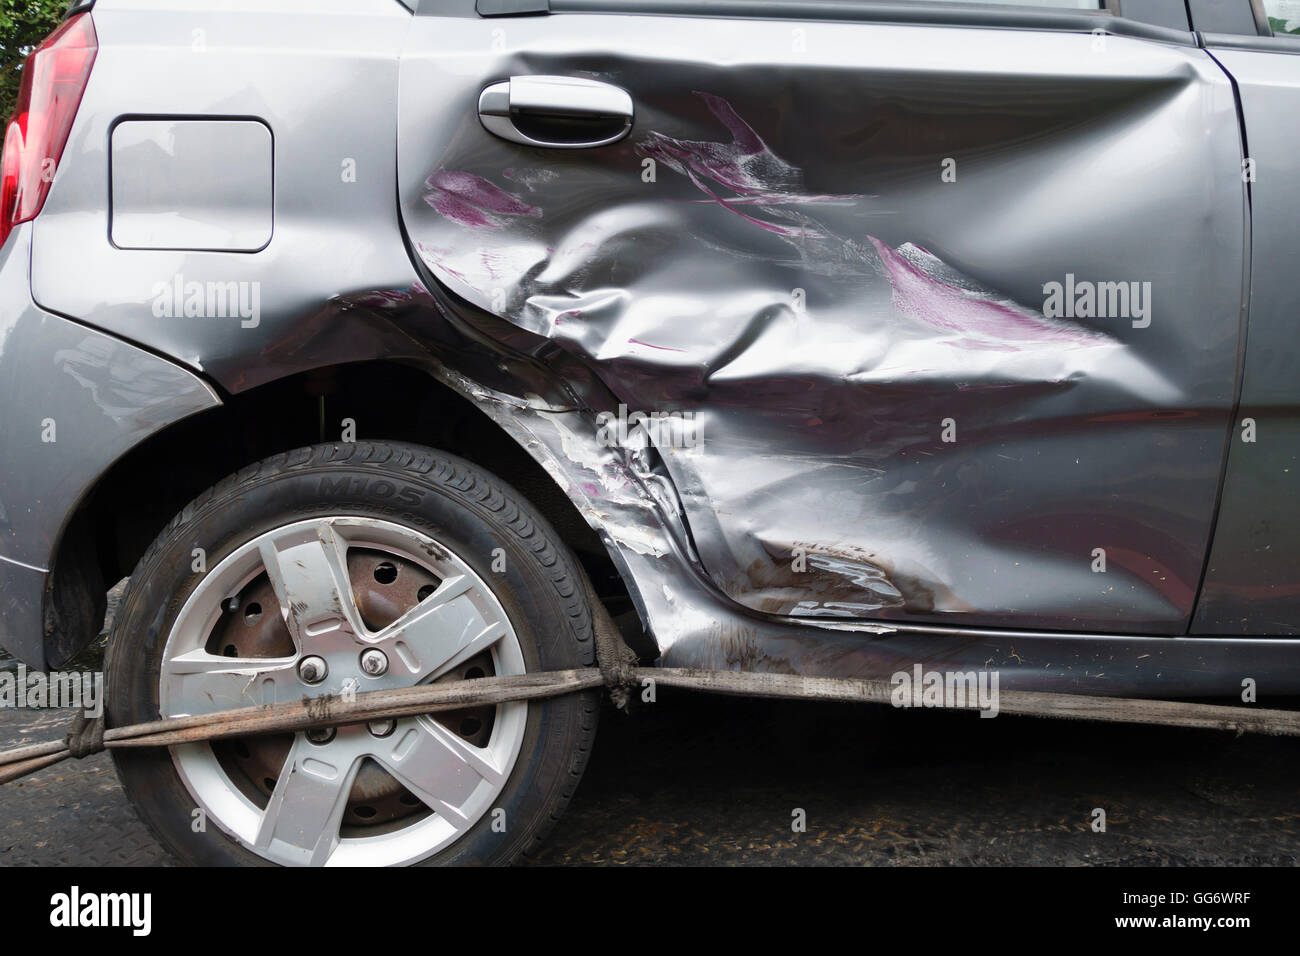 UK. A car with a badly dented rear door following a collision with another vehicle - Stock Image